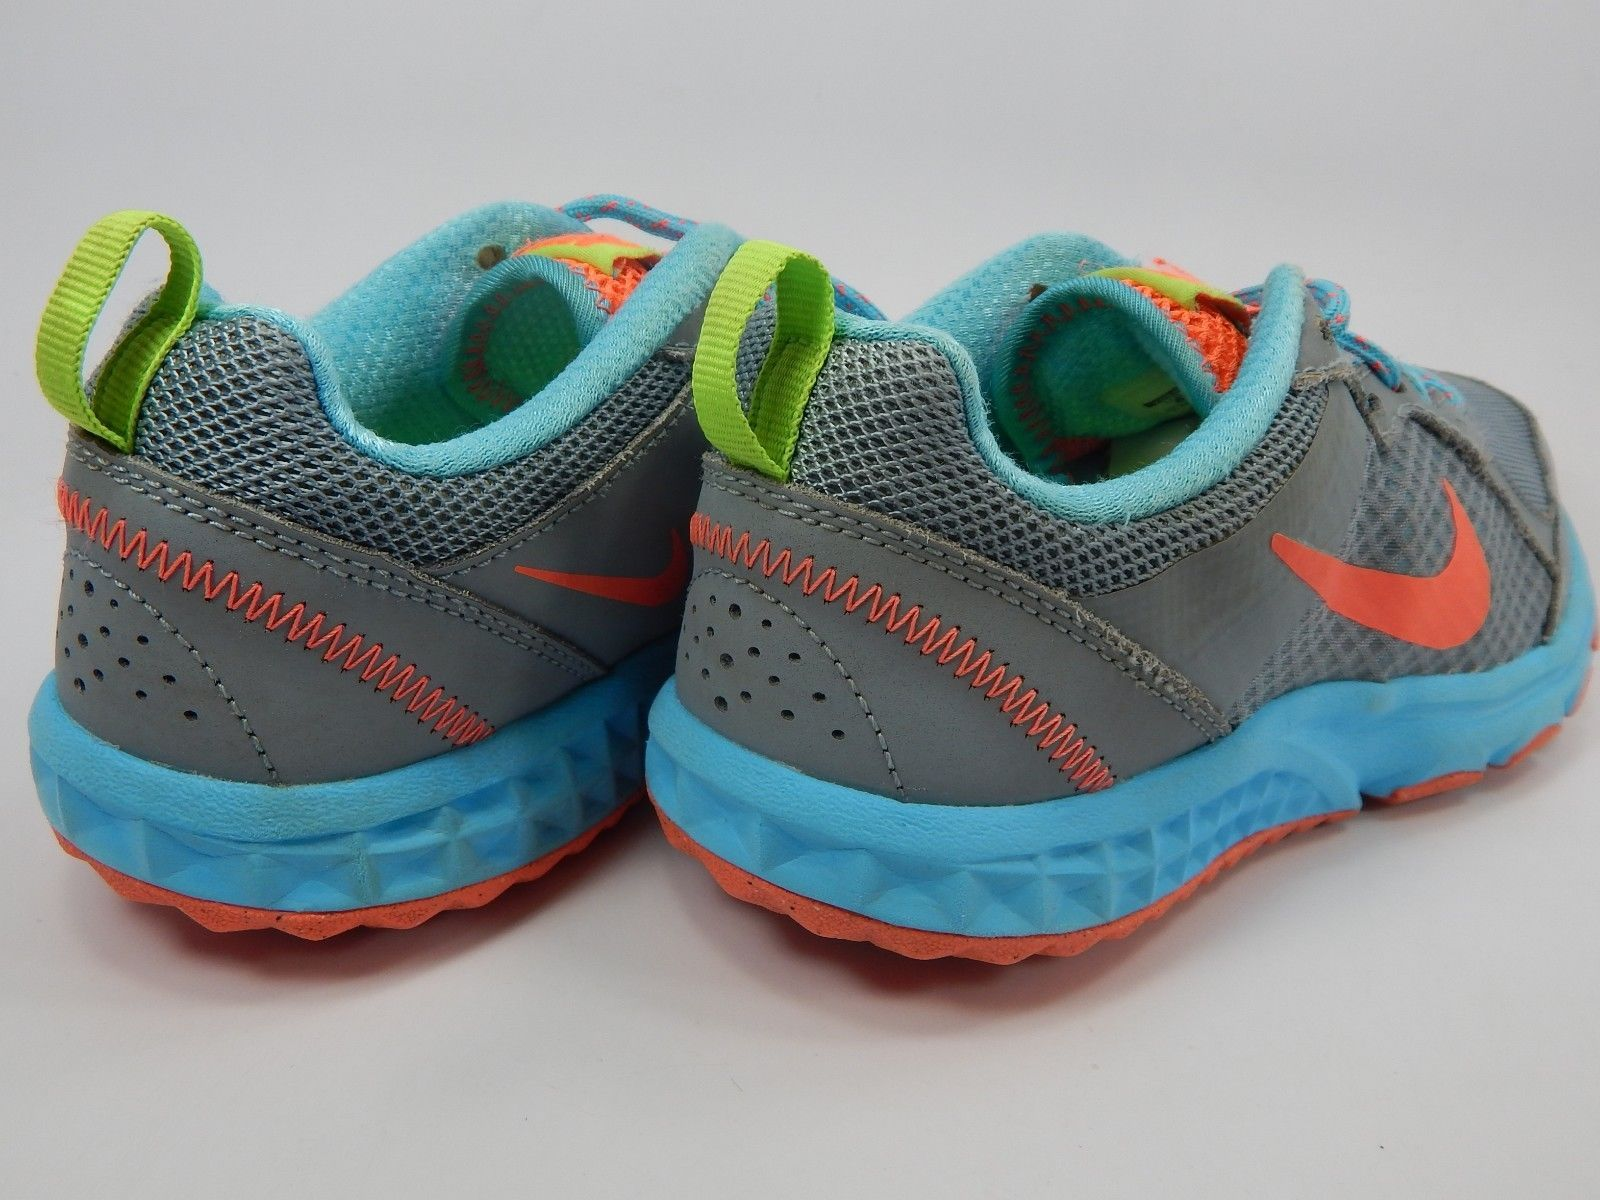 wholesale dealer 6d407 337f2 Nike Wild Trail Size 6 M (B) EU 36.5 Women s Trail Running Shoes Gray